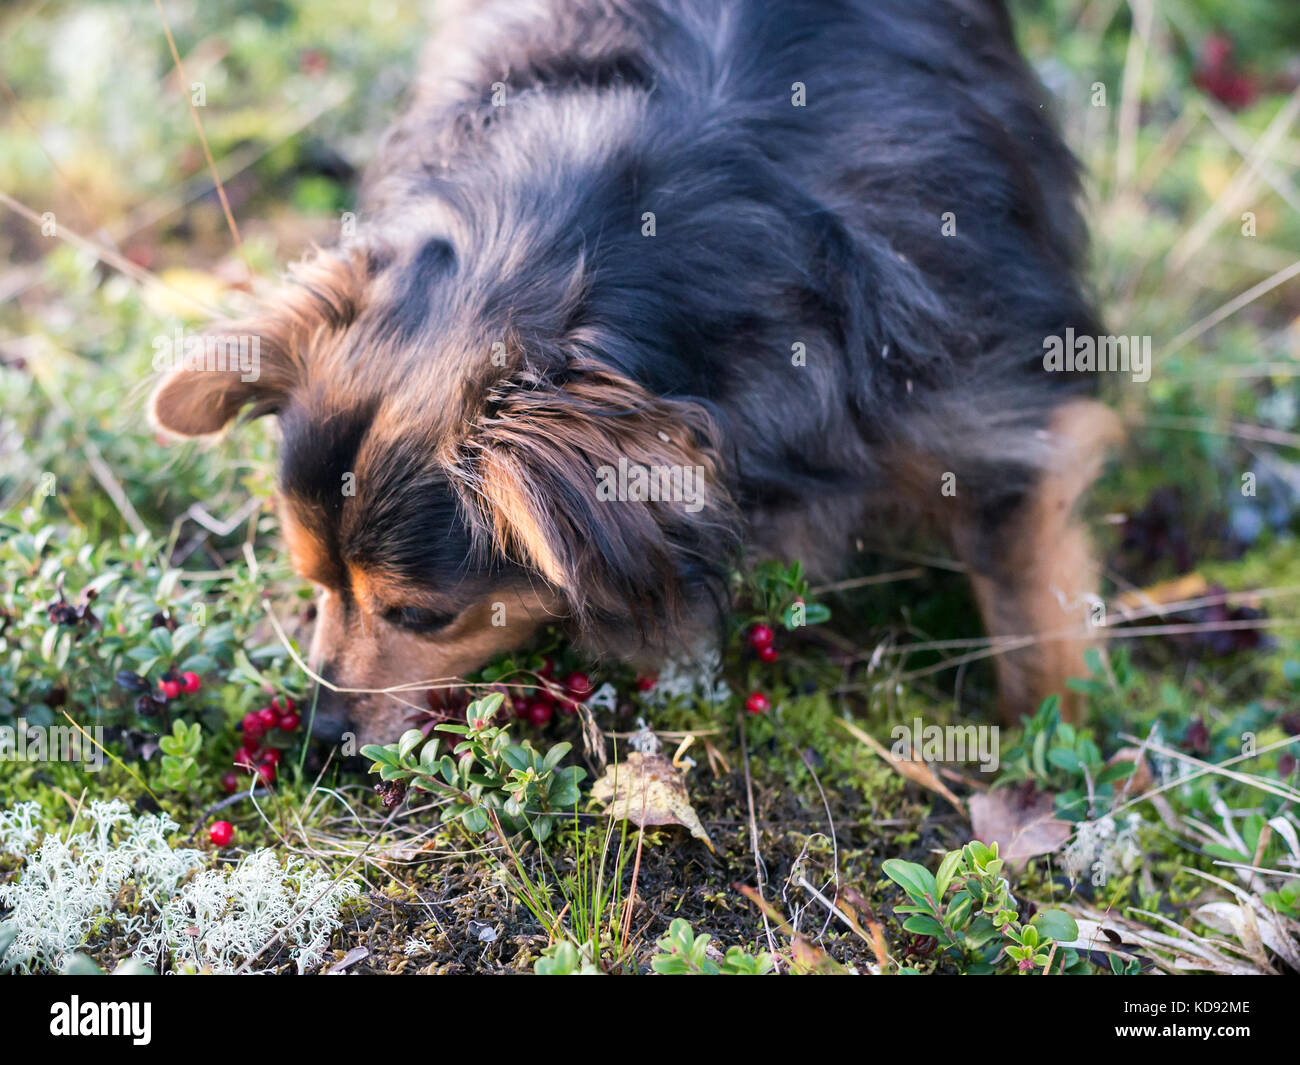 Dog picking and eating Lingonberry - Stock Image